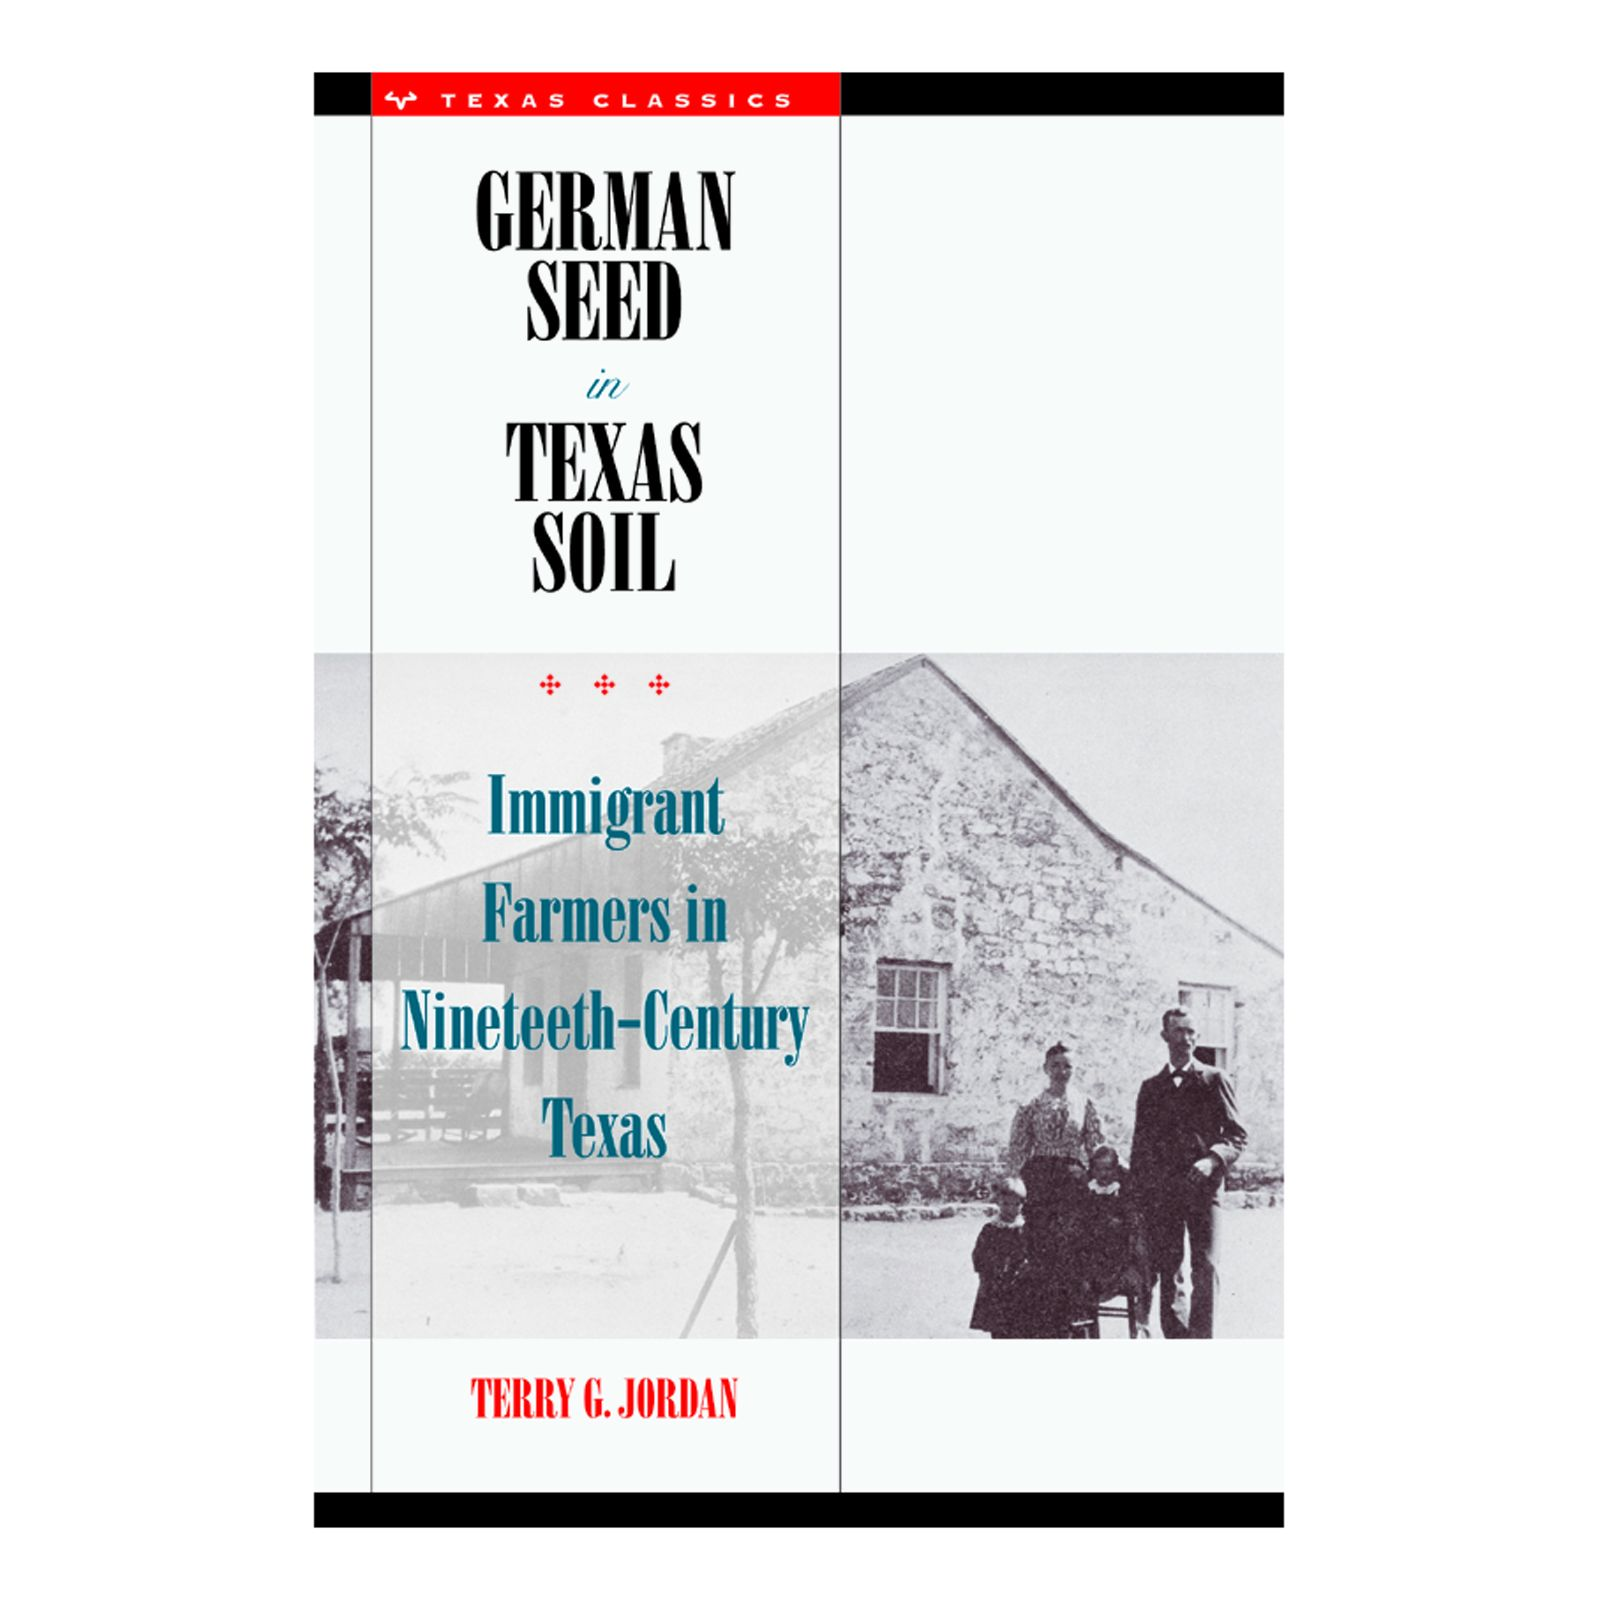 German Seed in Texas Soil: Immigrant Farmers in Nineteenth-Century Texas